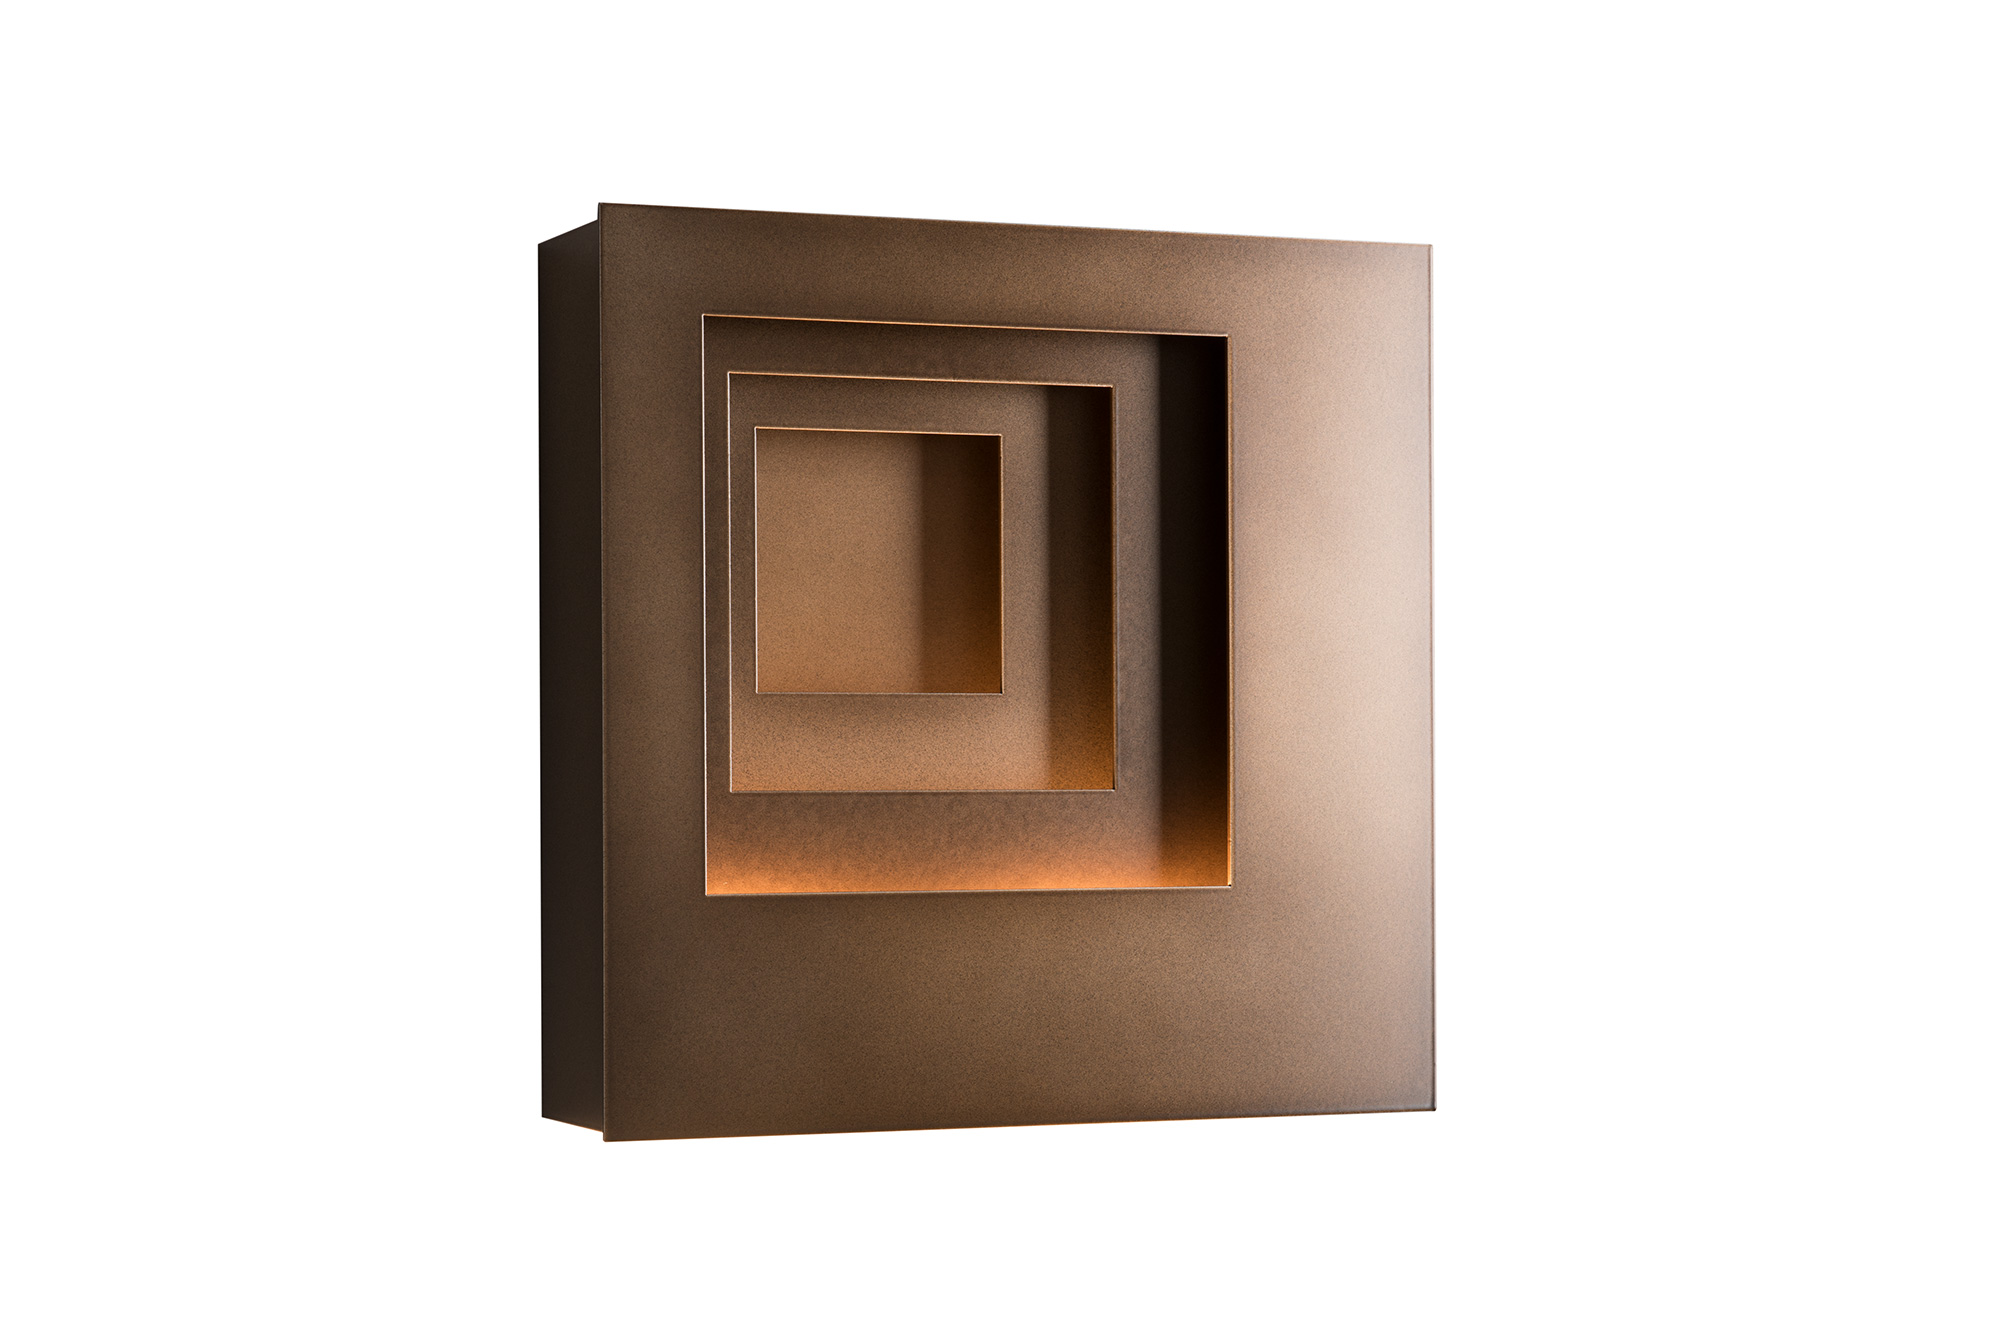 PROCESSION SQUARE OUTDOOR SCONCE – RIGHT